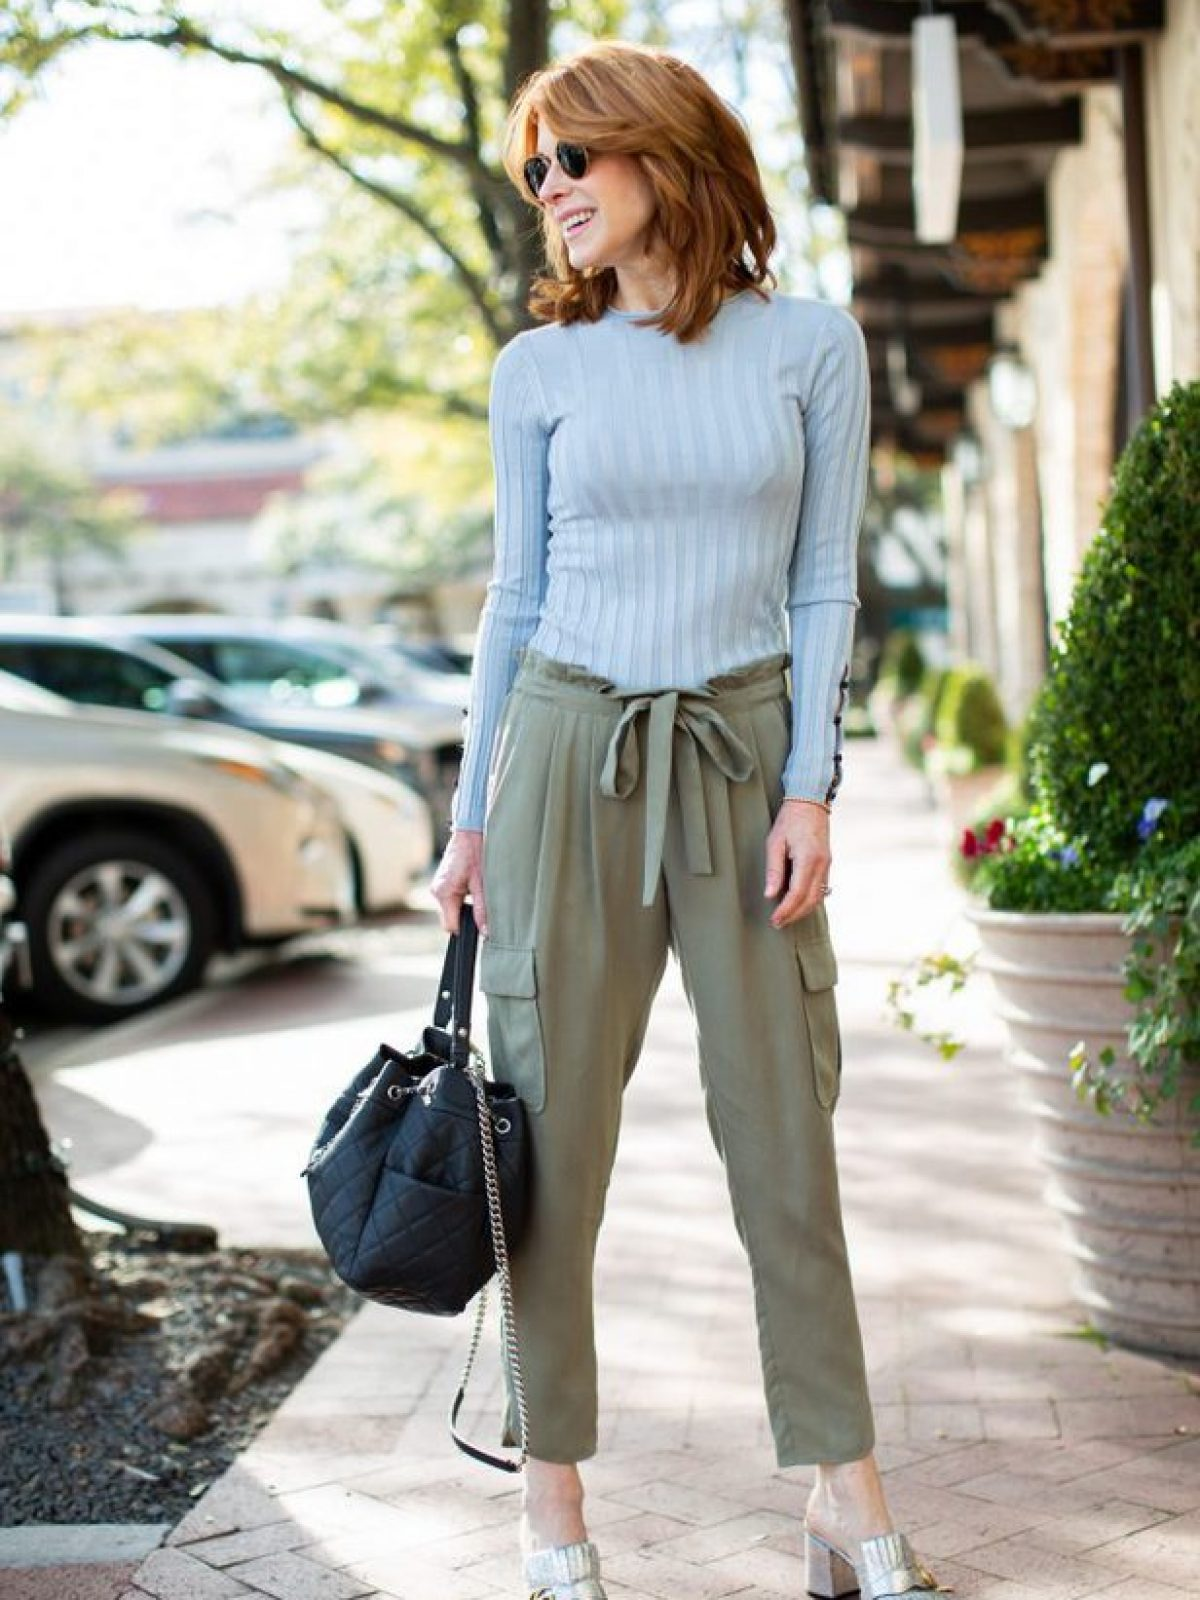 CHIC UTILITY STYLE PANTS